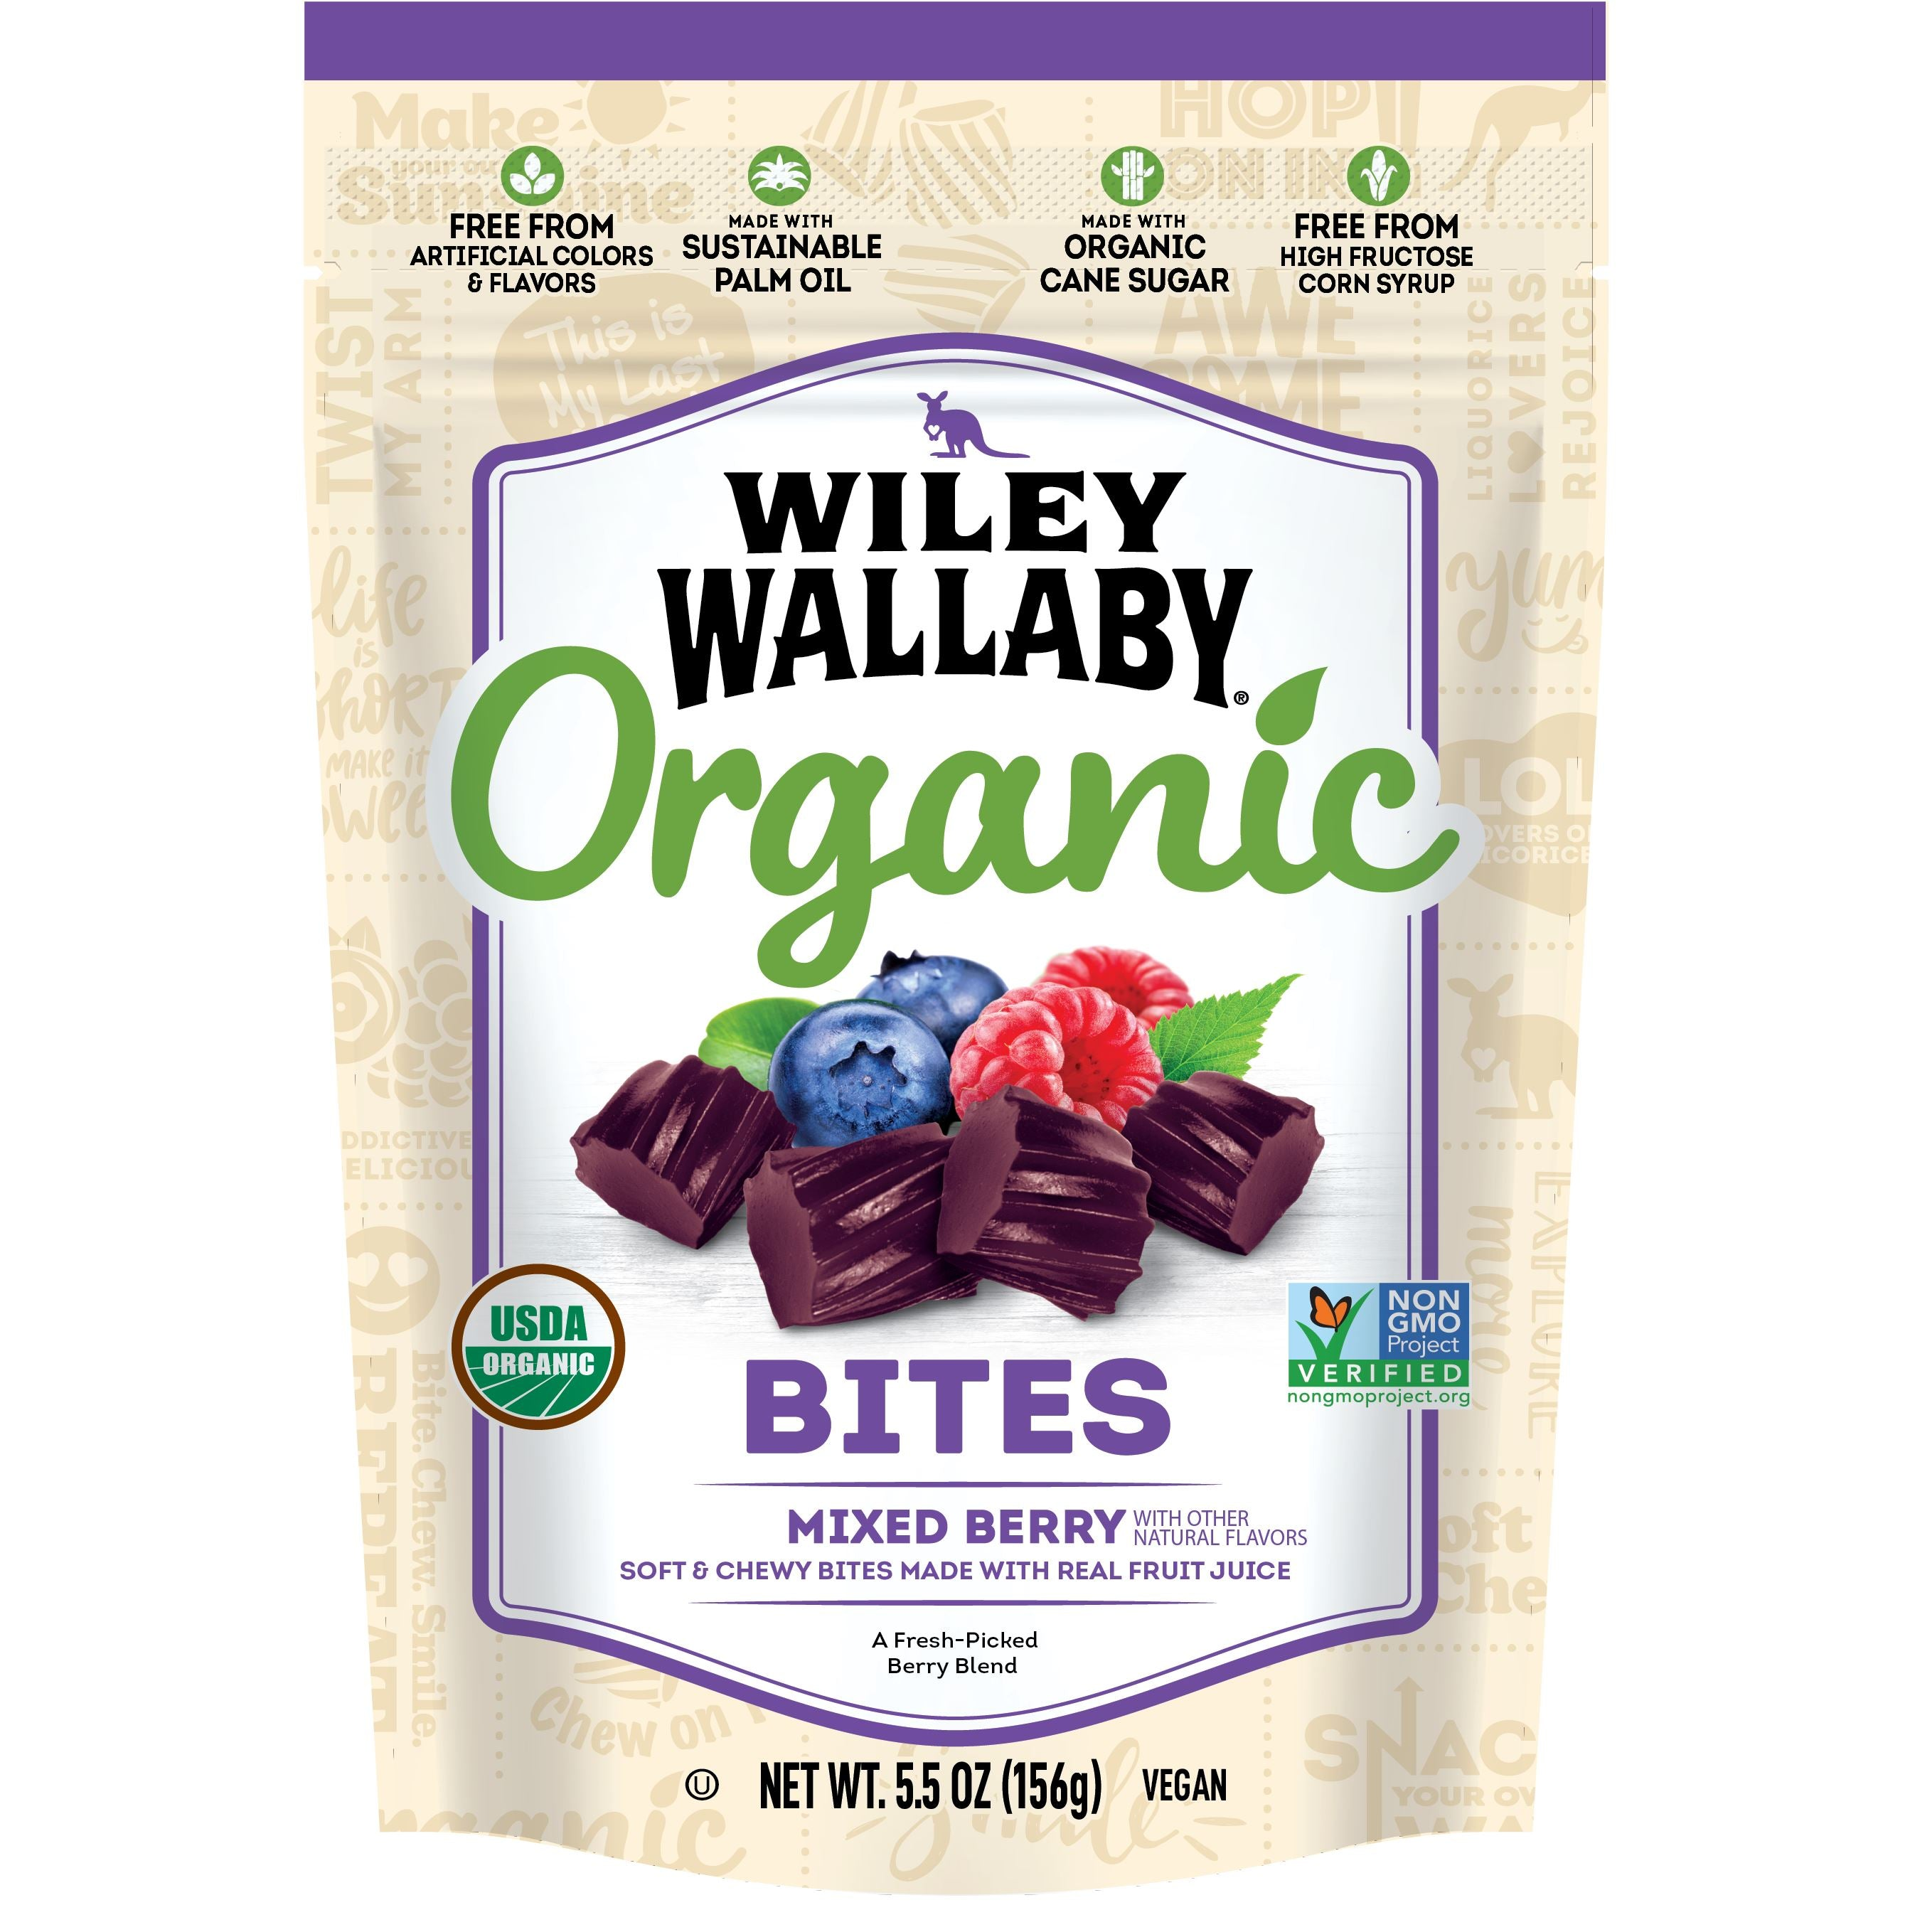 Wiley Wallaby Licorice Wiley Wallaby Organic Mixed Berry 5.5 Ounce